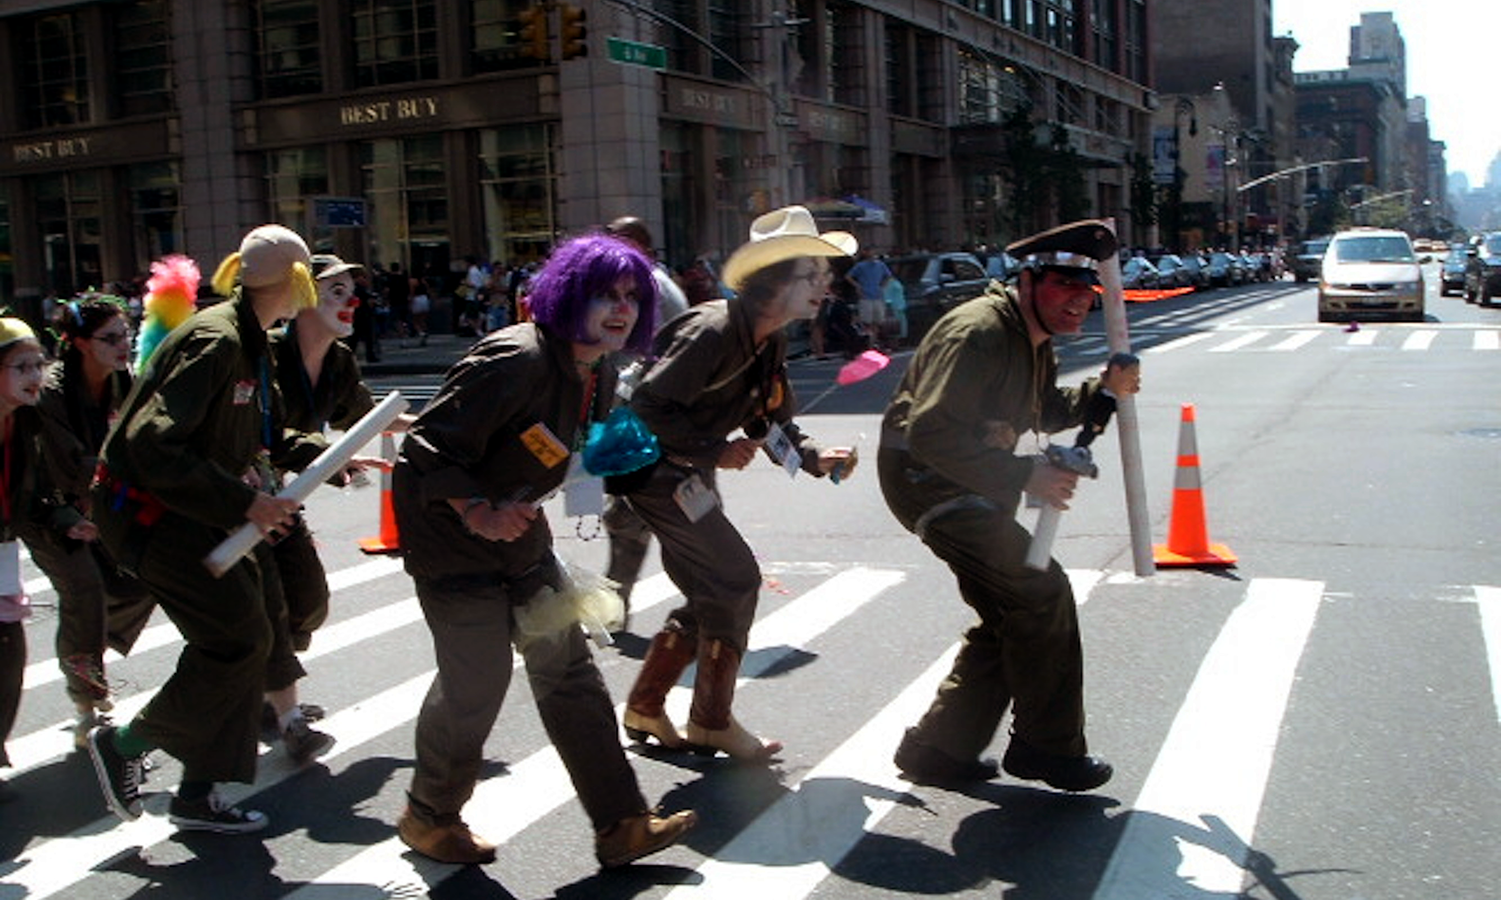 a group of clowns crossing a street